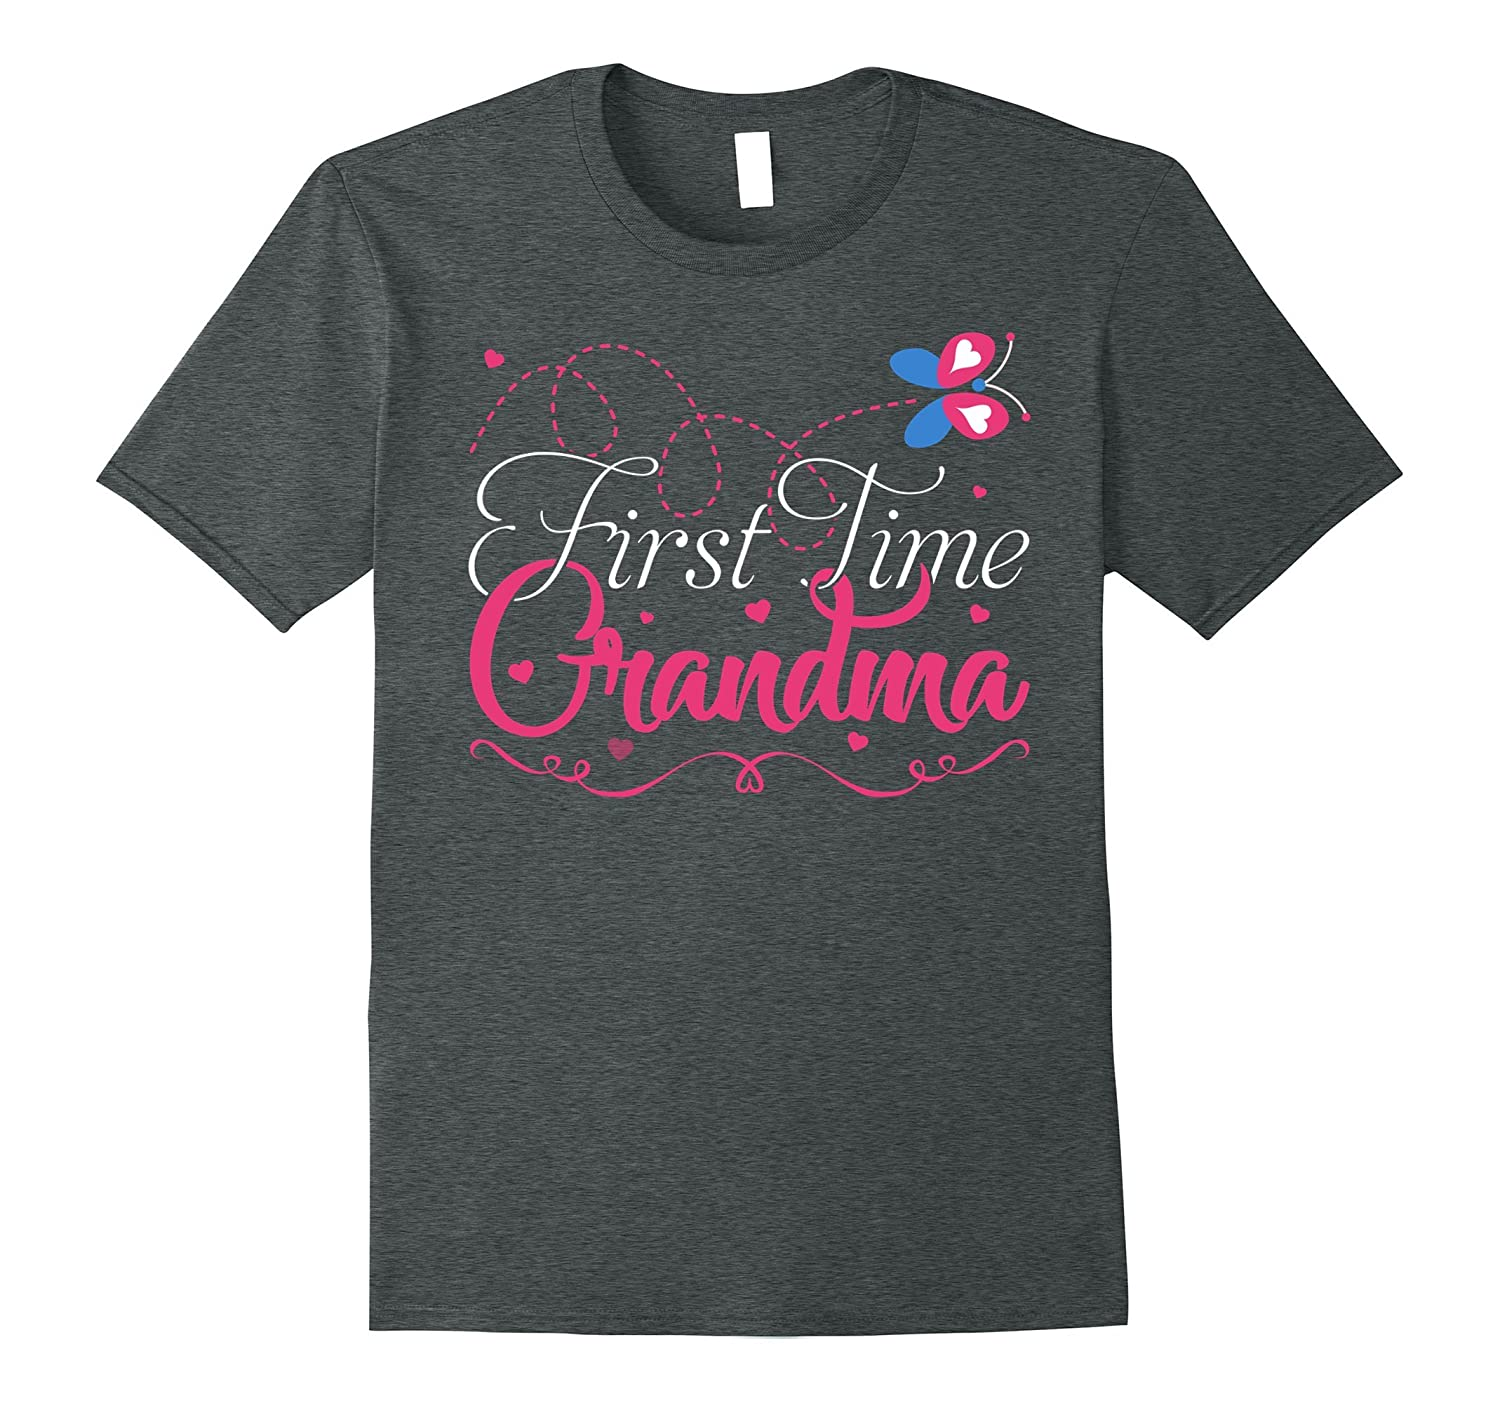 1st Time Grandma T-shirt New Grandmother Gift For Her-Vaci